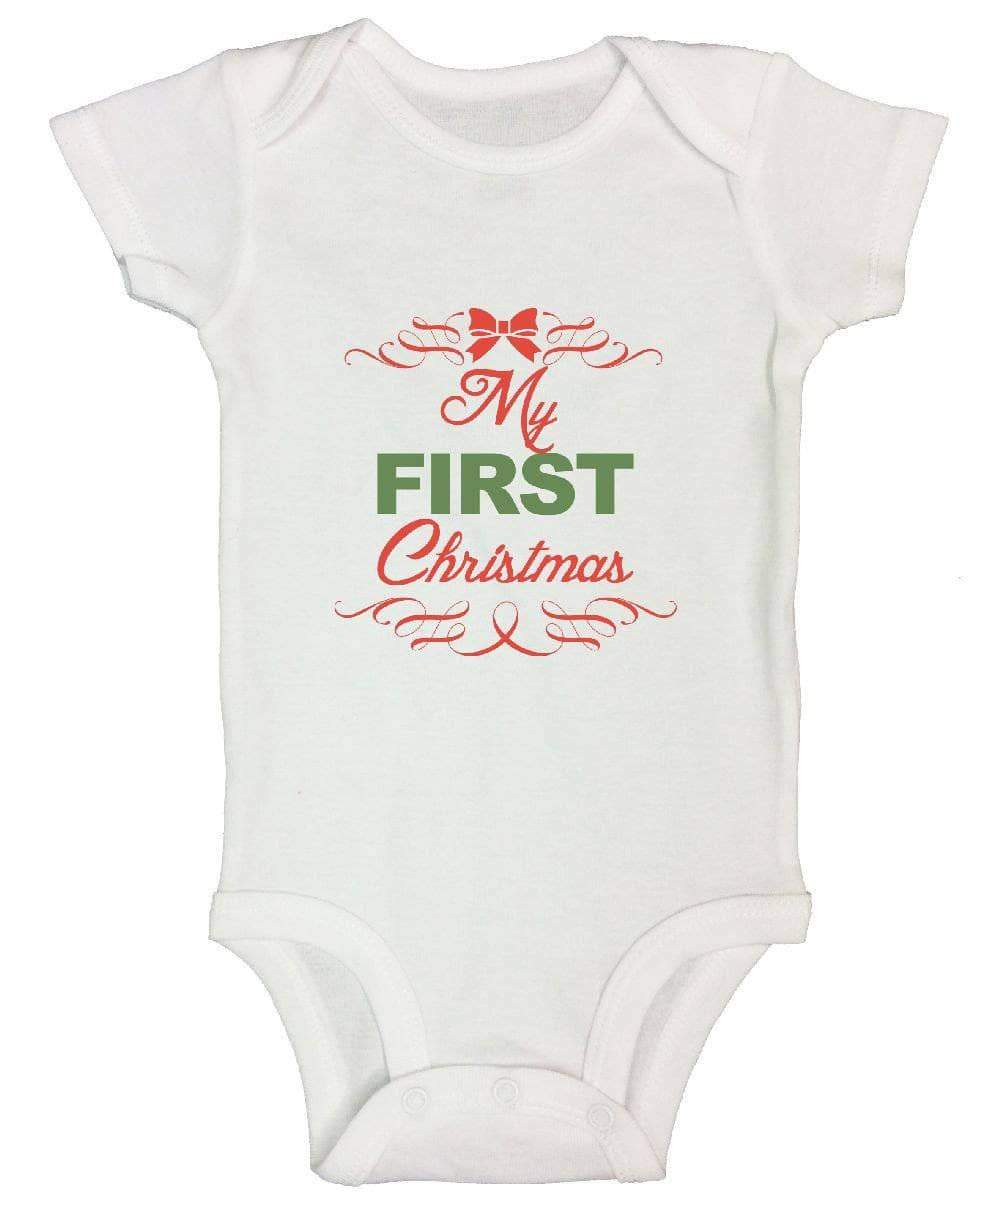 My First Christmas FUNNY KIDS ONESIE Short Sleeve 0-3 Months Womens Tank Tops